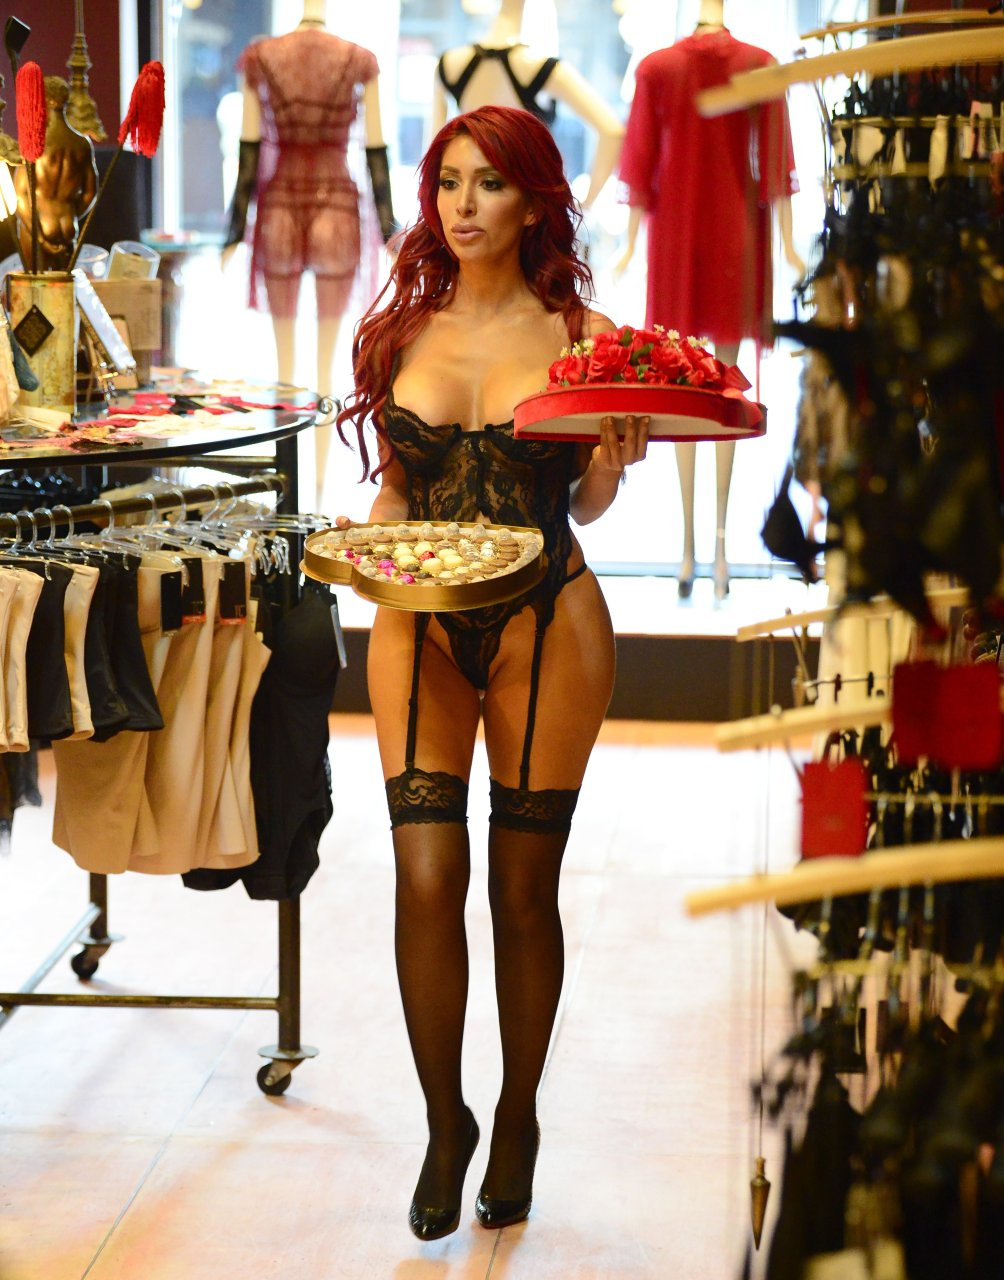 Farrah-Abraham-See-Through-14-The-Fappening-Blog.jpg